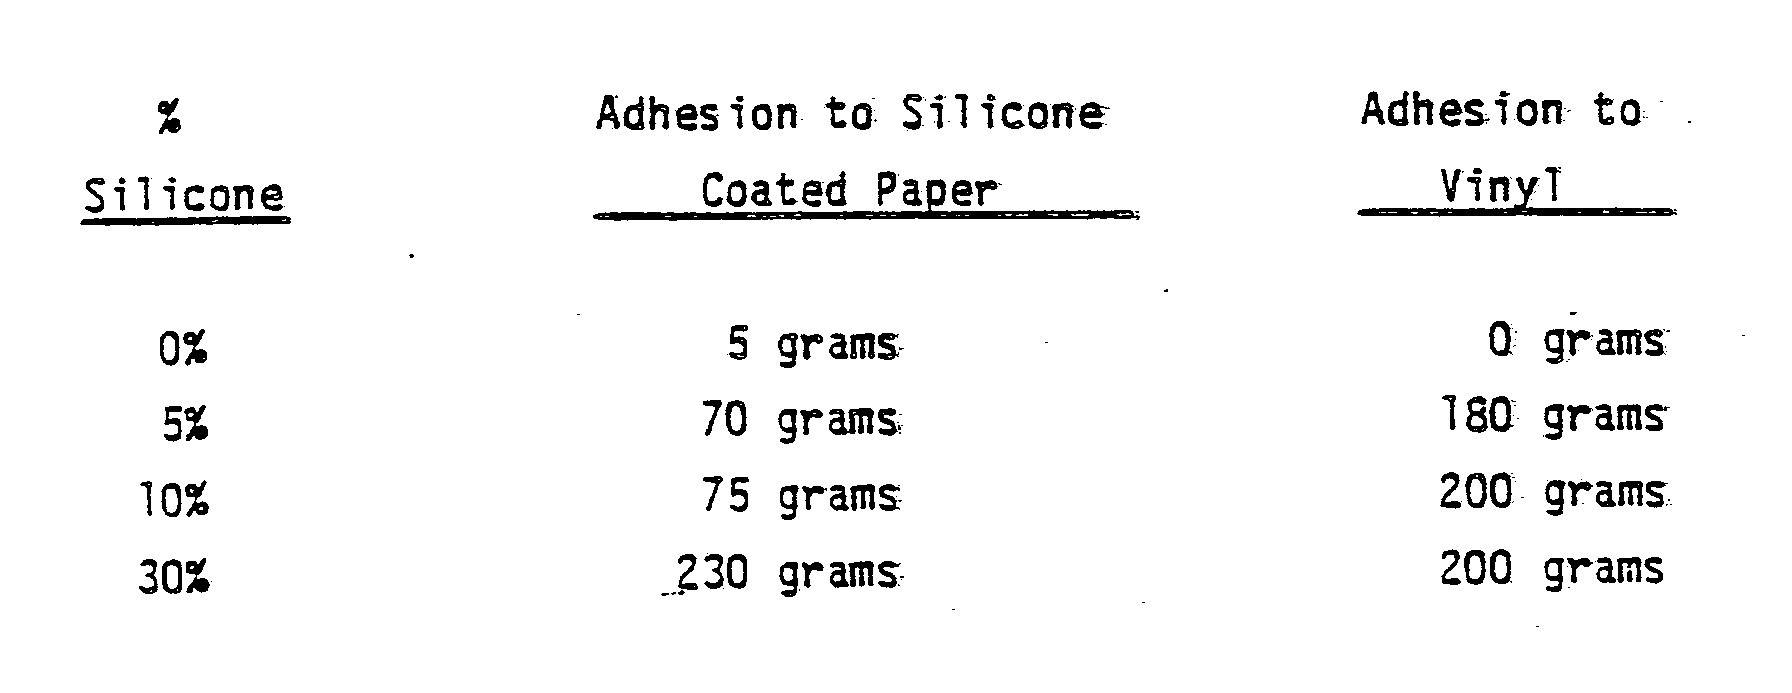 Patent Ep0289929a2 Silicone Adhesive And Organic